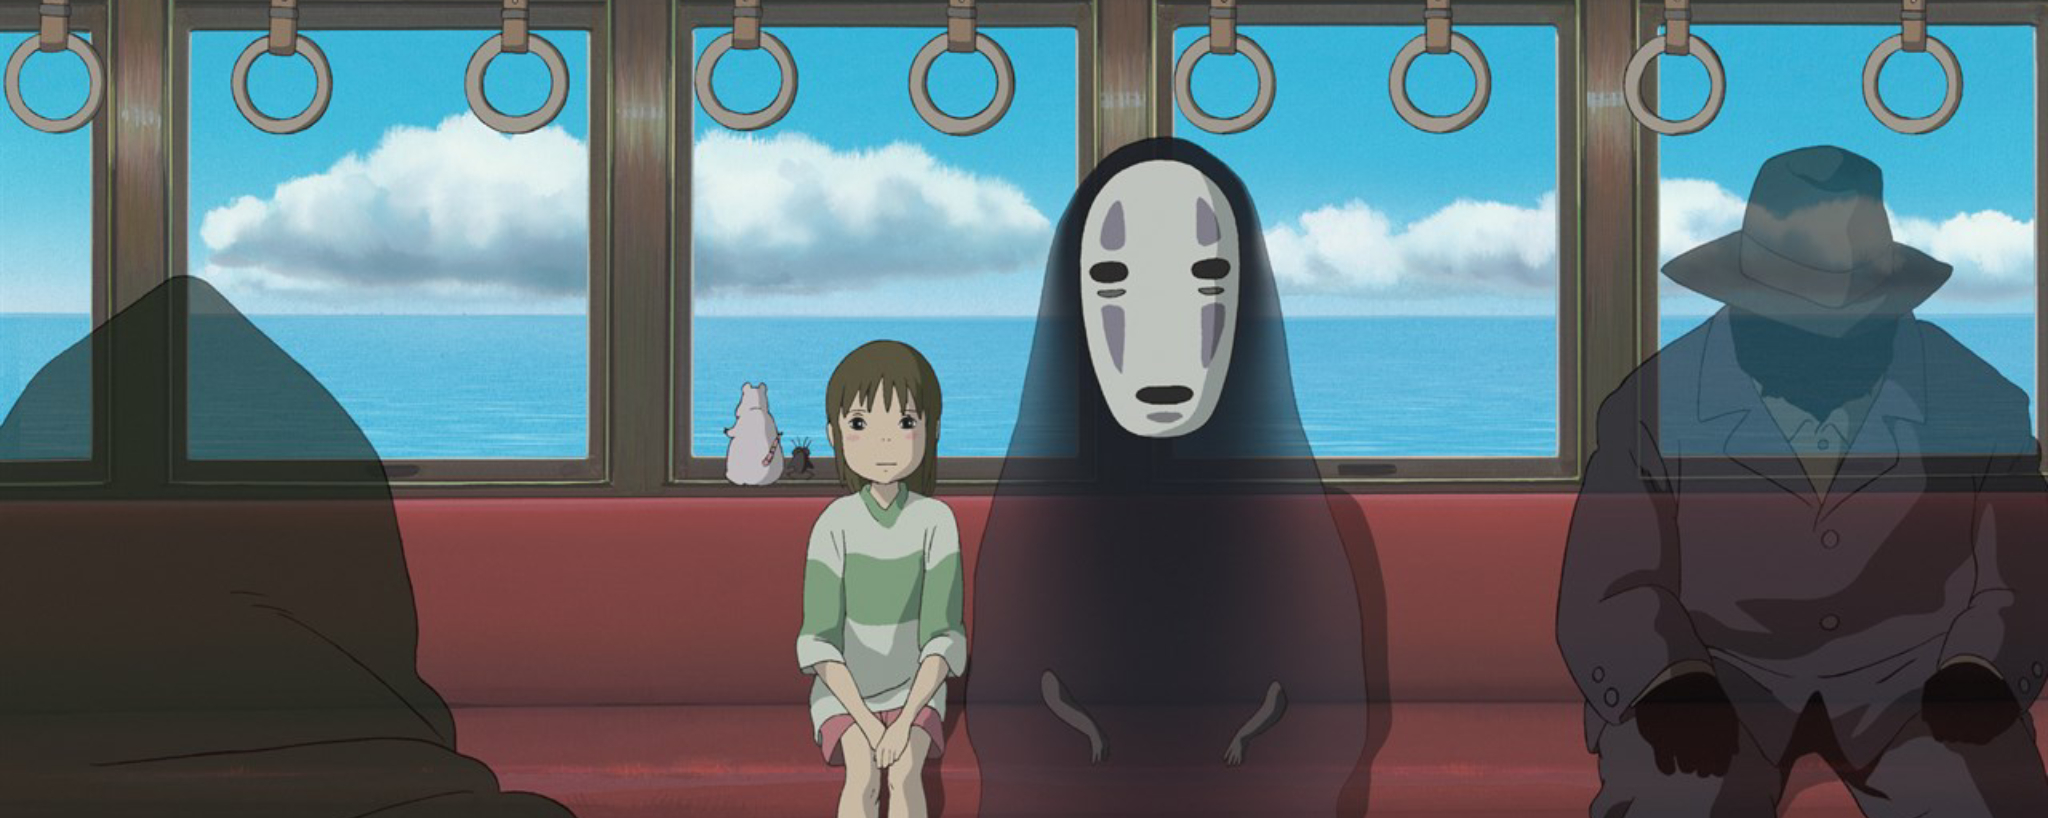 Chihiro and No Face on the bus